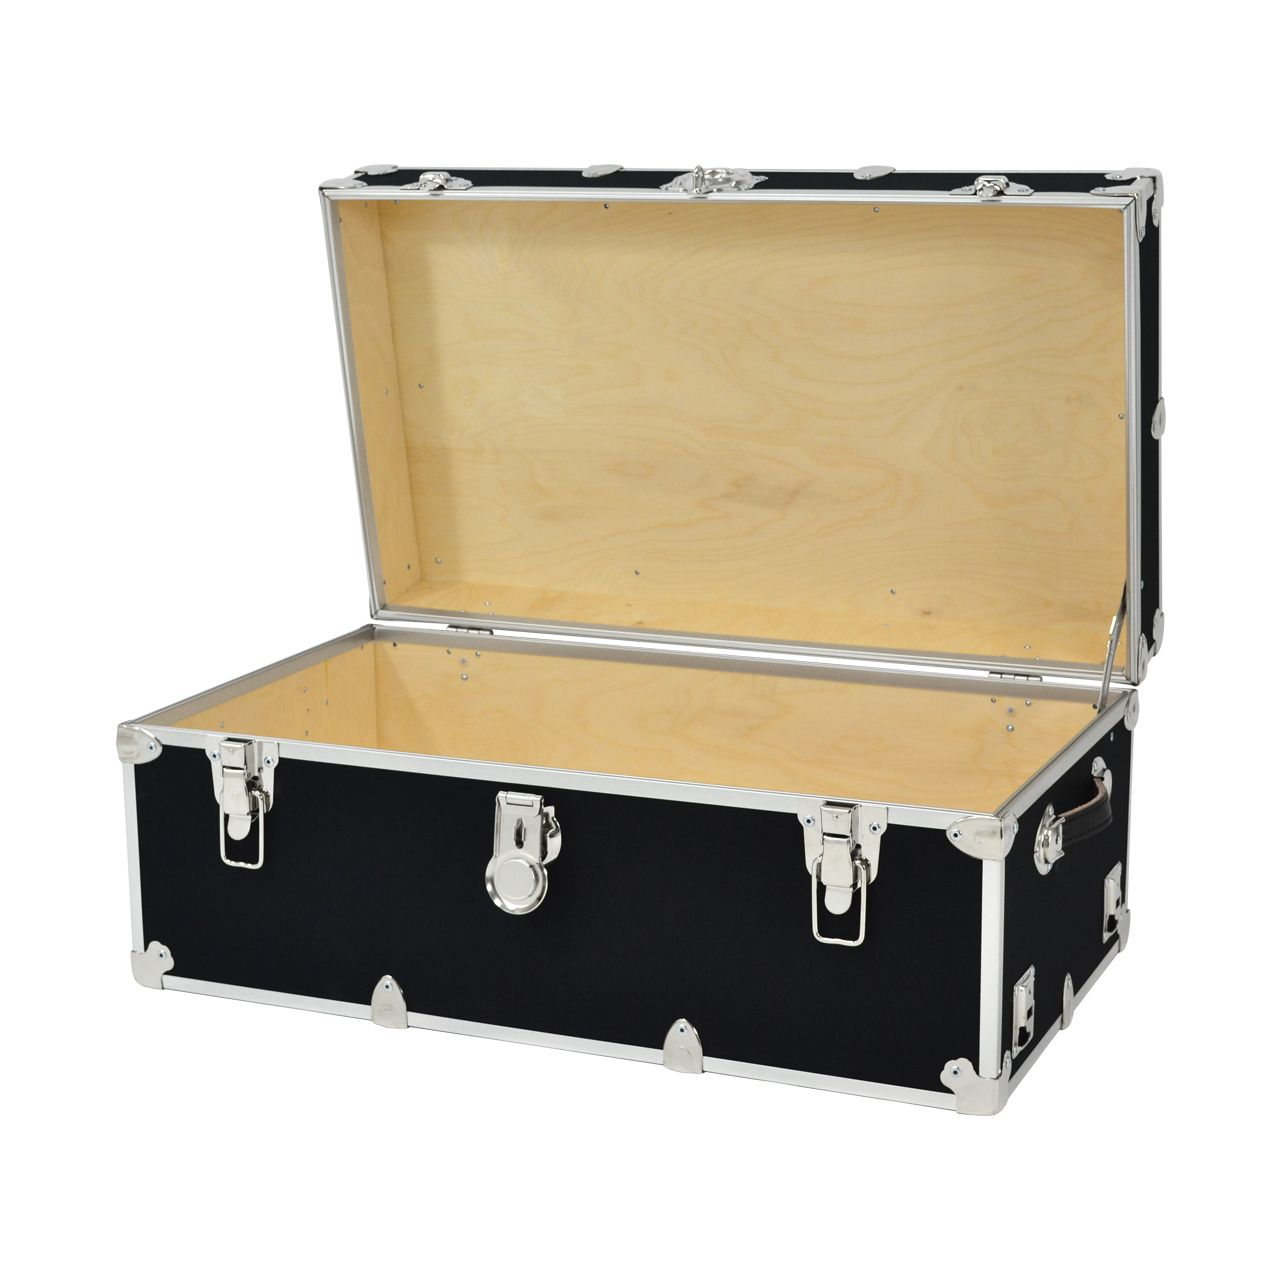 Storage Trunks For College Large Rhino Armor Trunk Opened  Rhino Armor Trunks  Pinterest  Rhinos